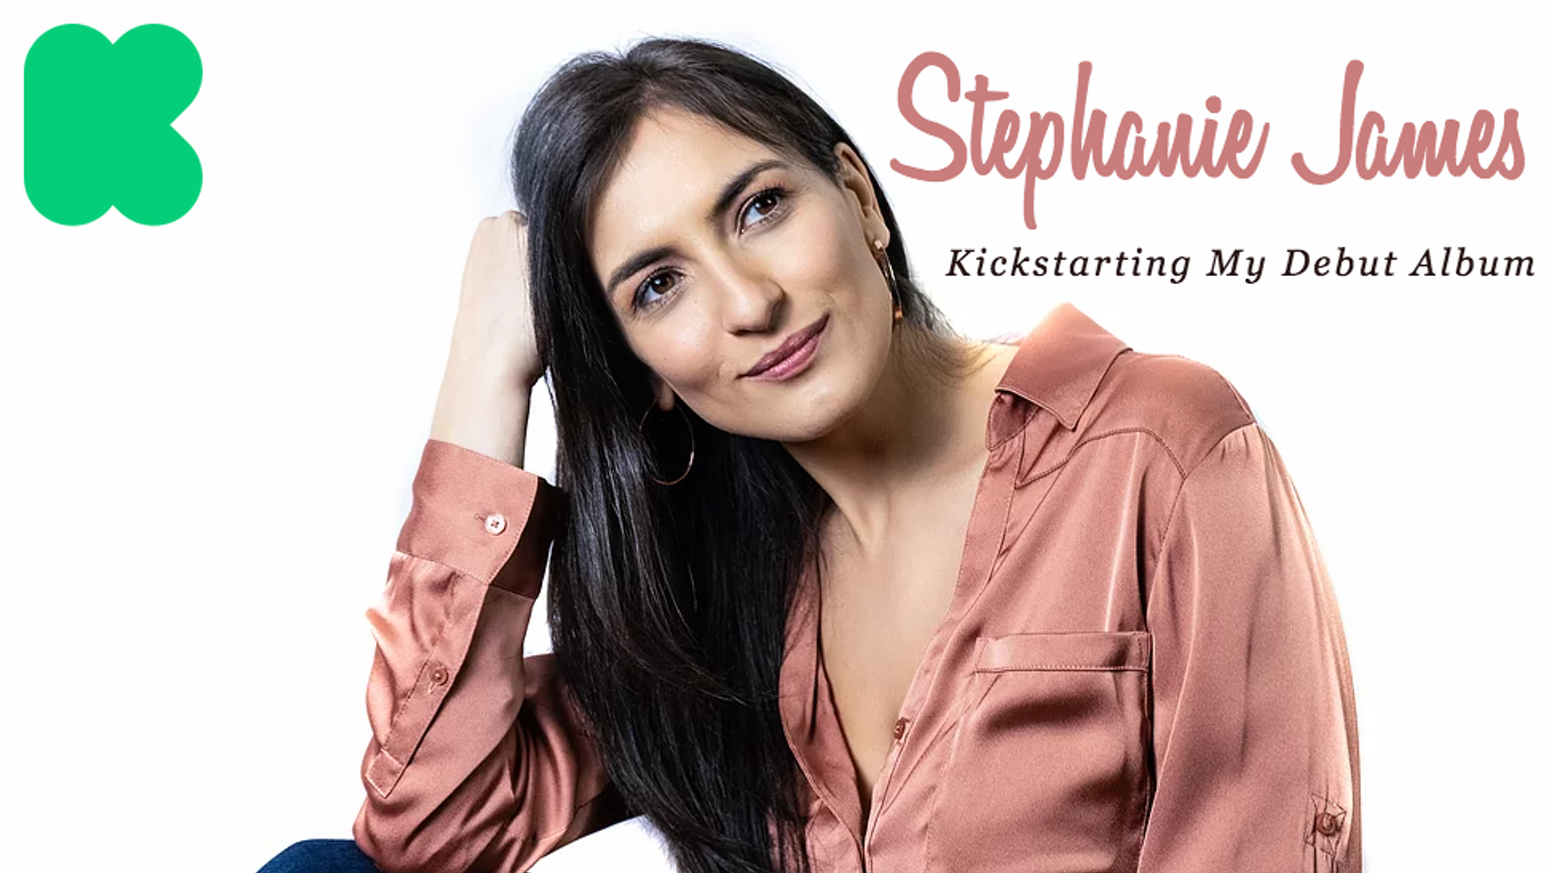 Join Stephanie James as she releases her new record - UNBREAKABLE